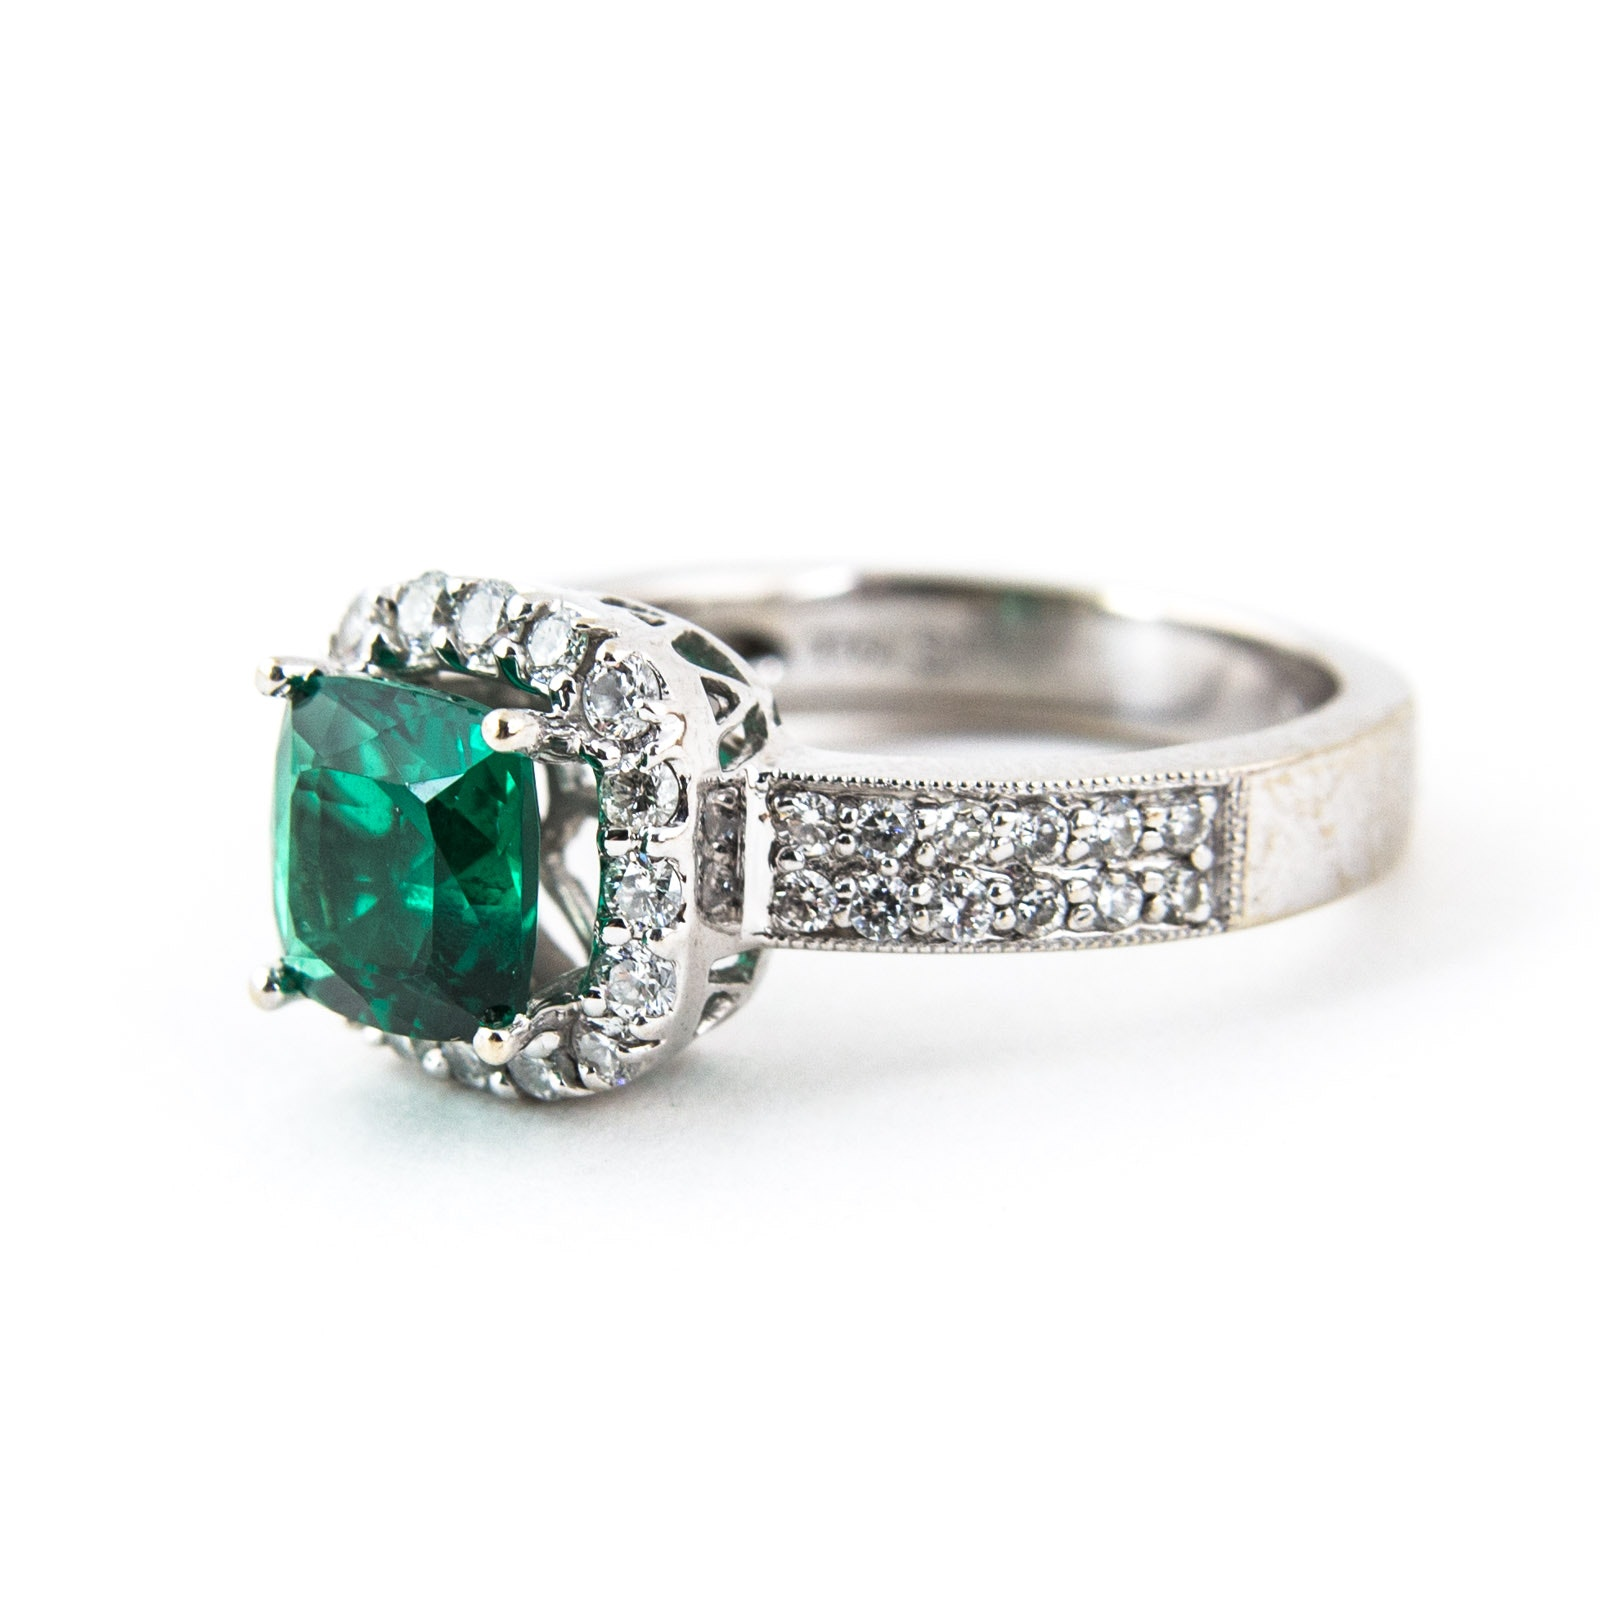 18K White Gold, Emerald, and Diamond Ring